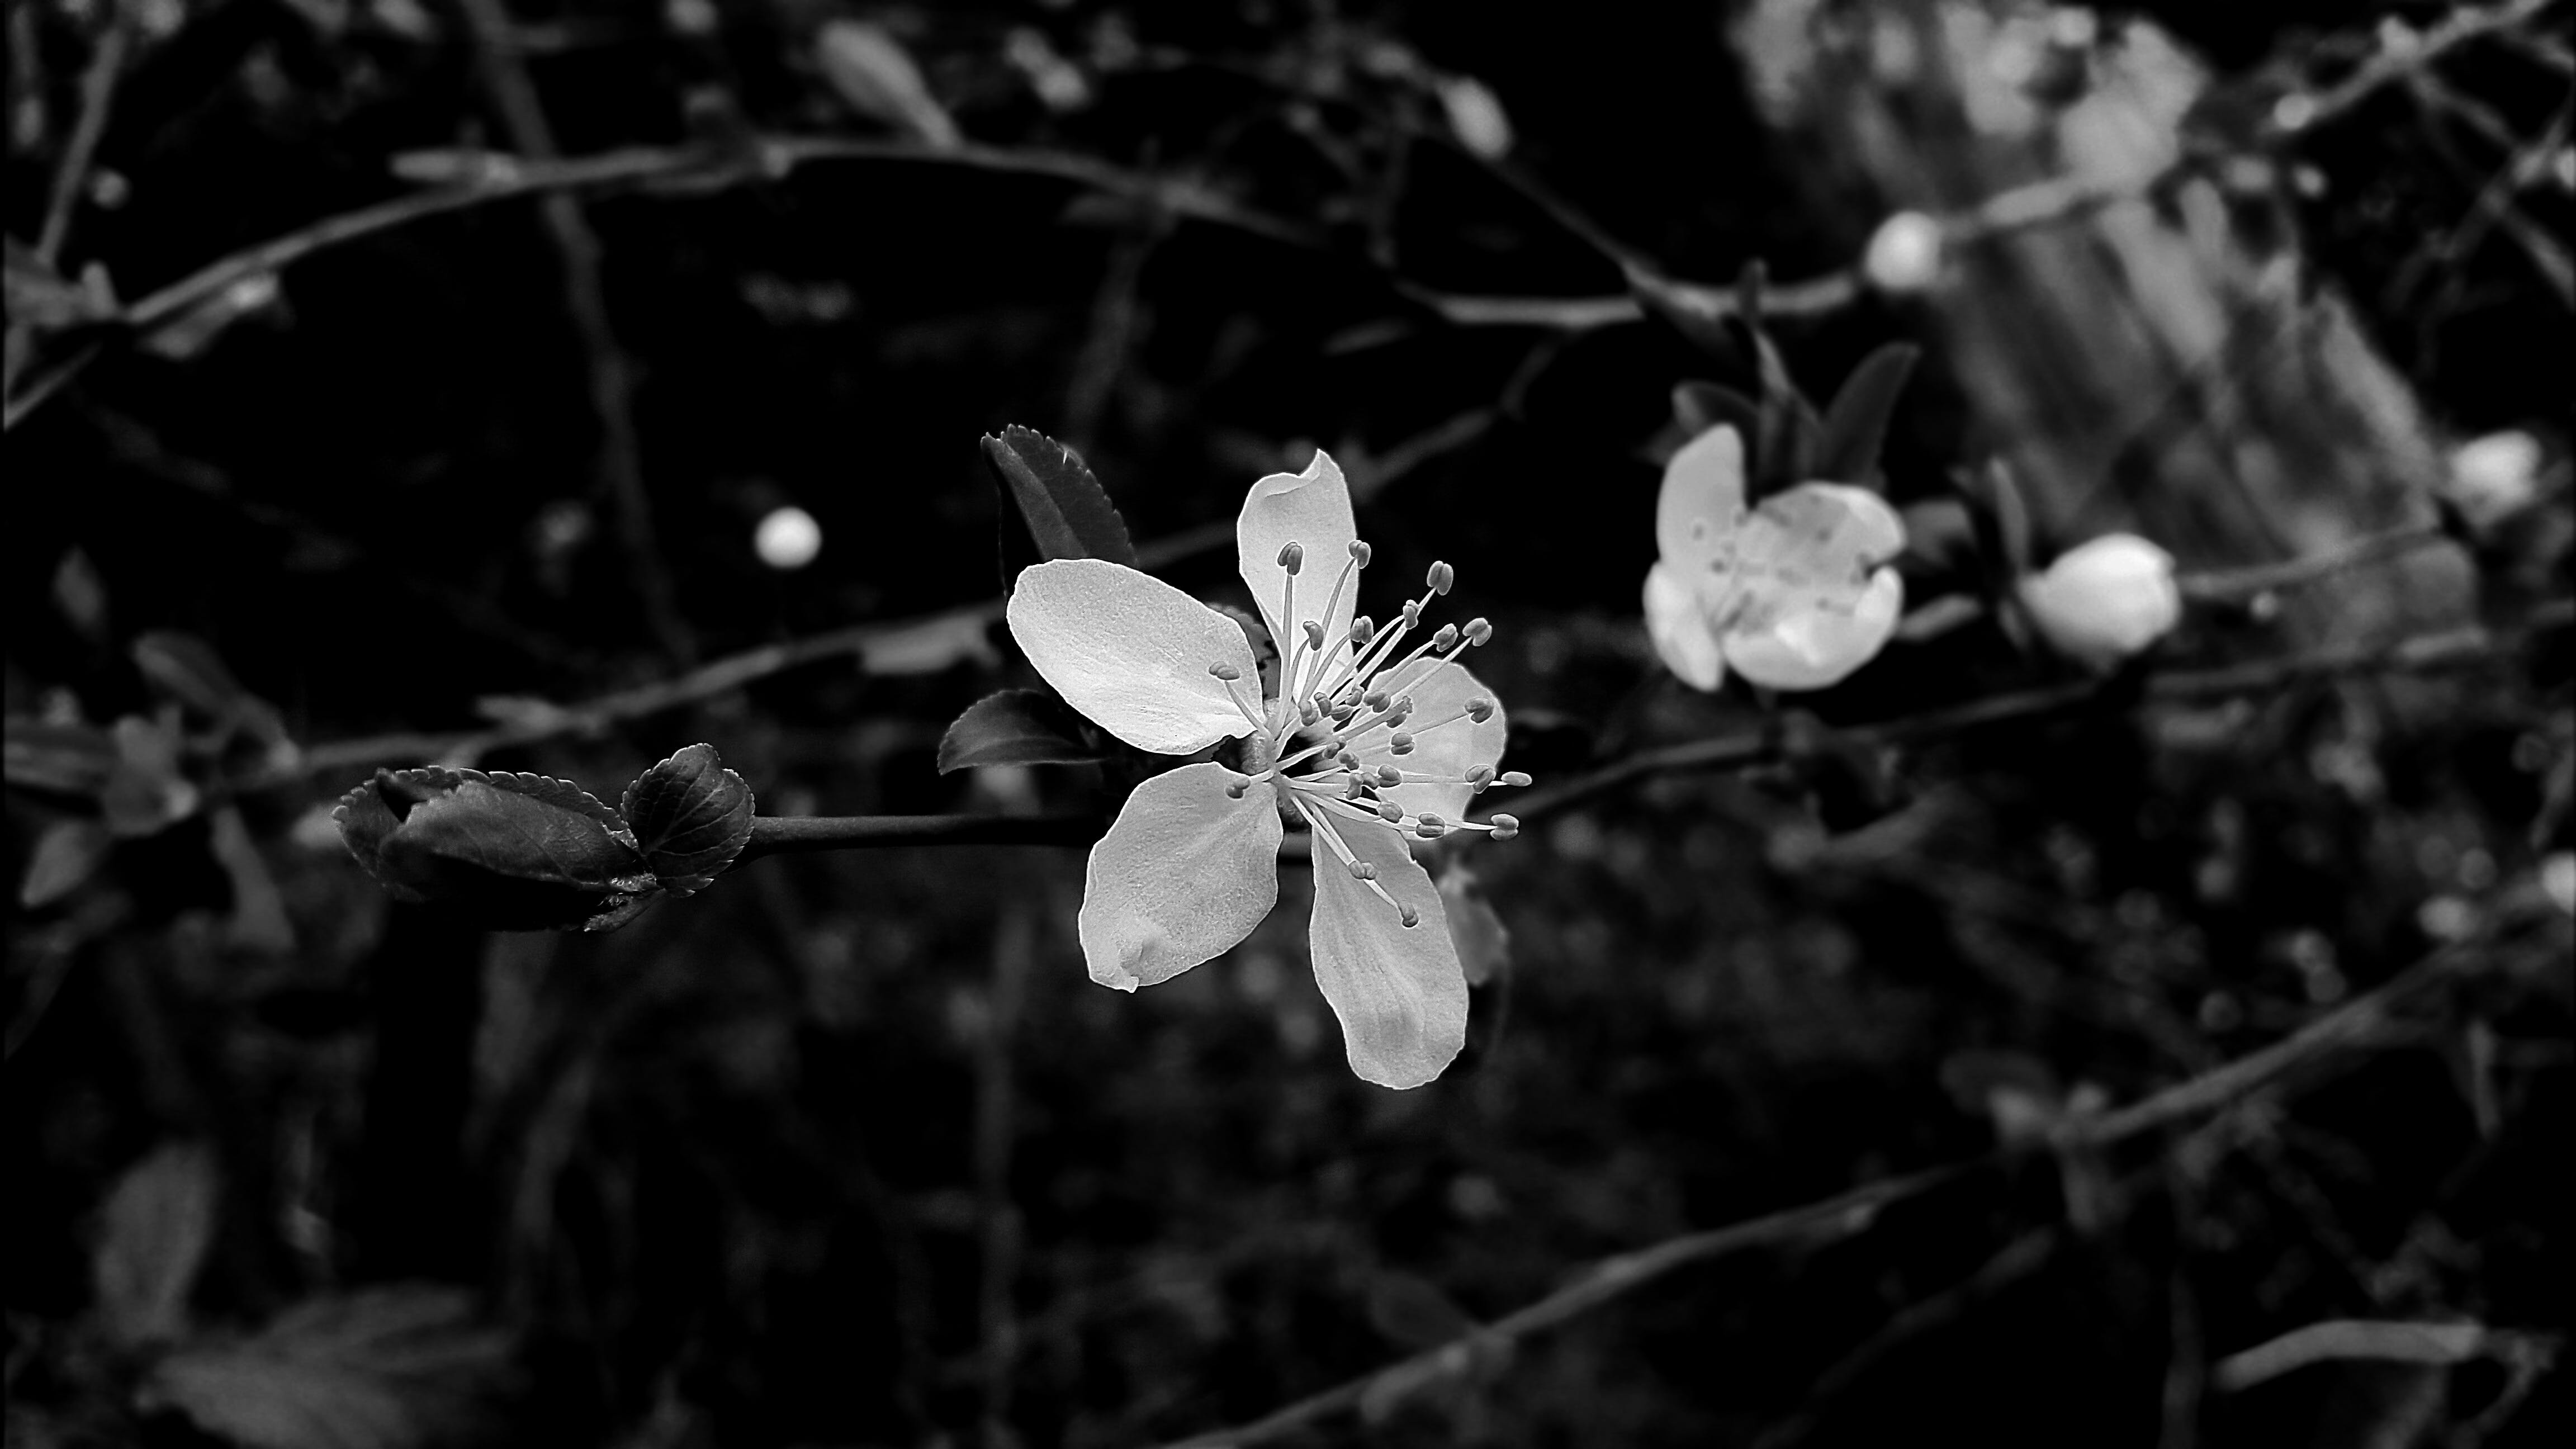 Free stock photo of black-and-white, bloom, blossom, cherry blossom